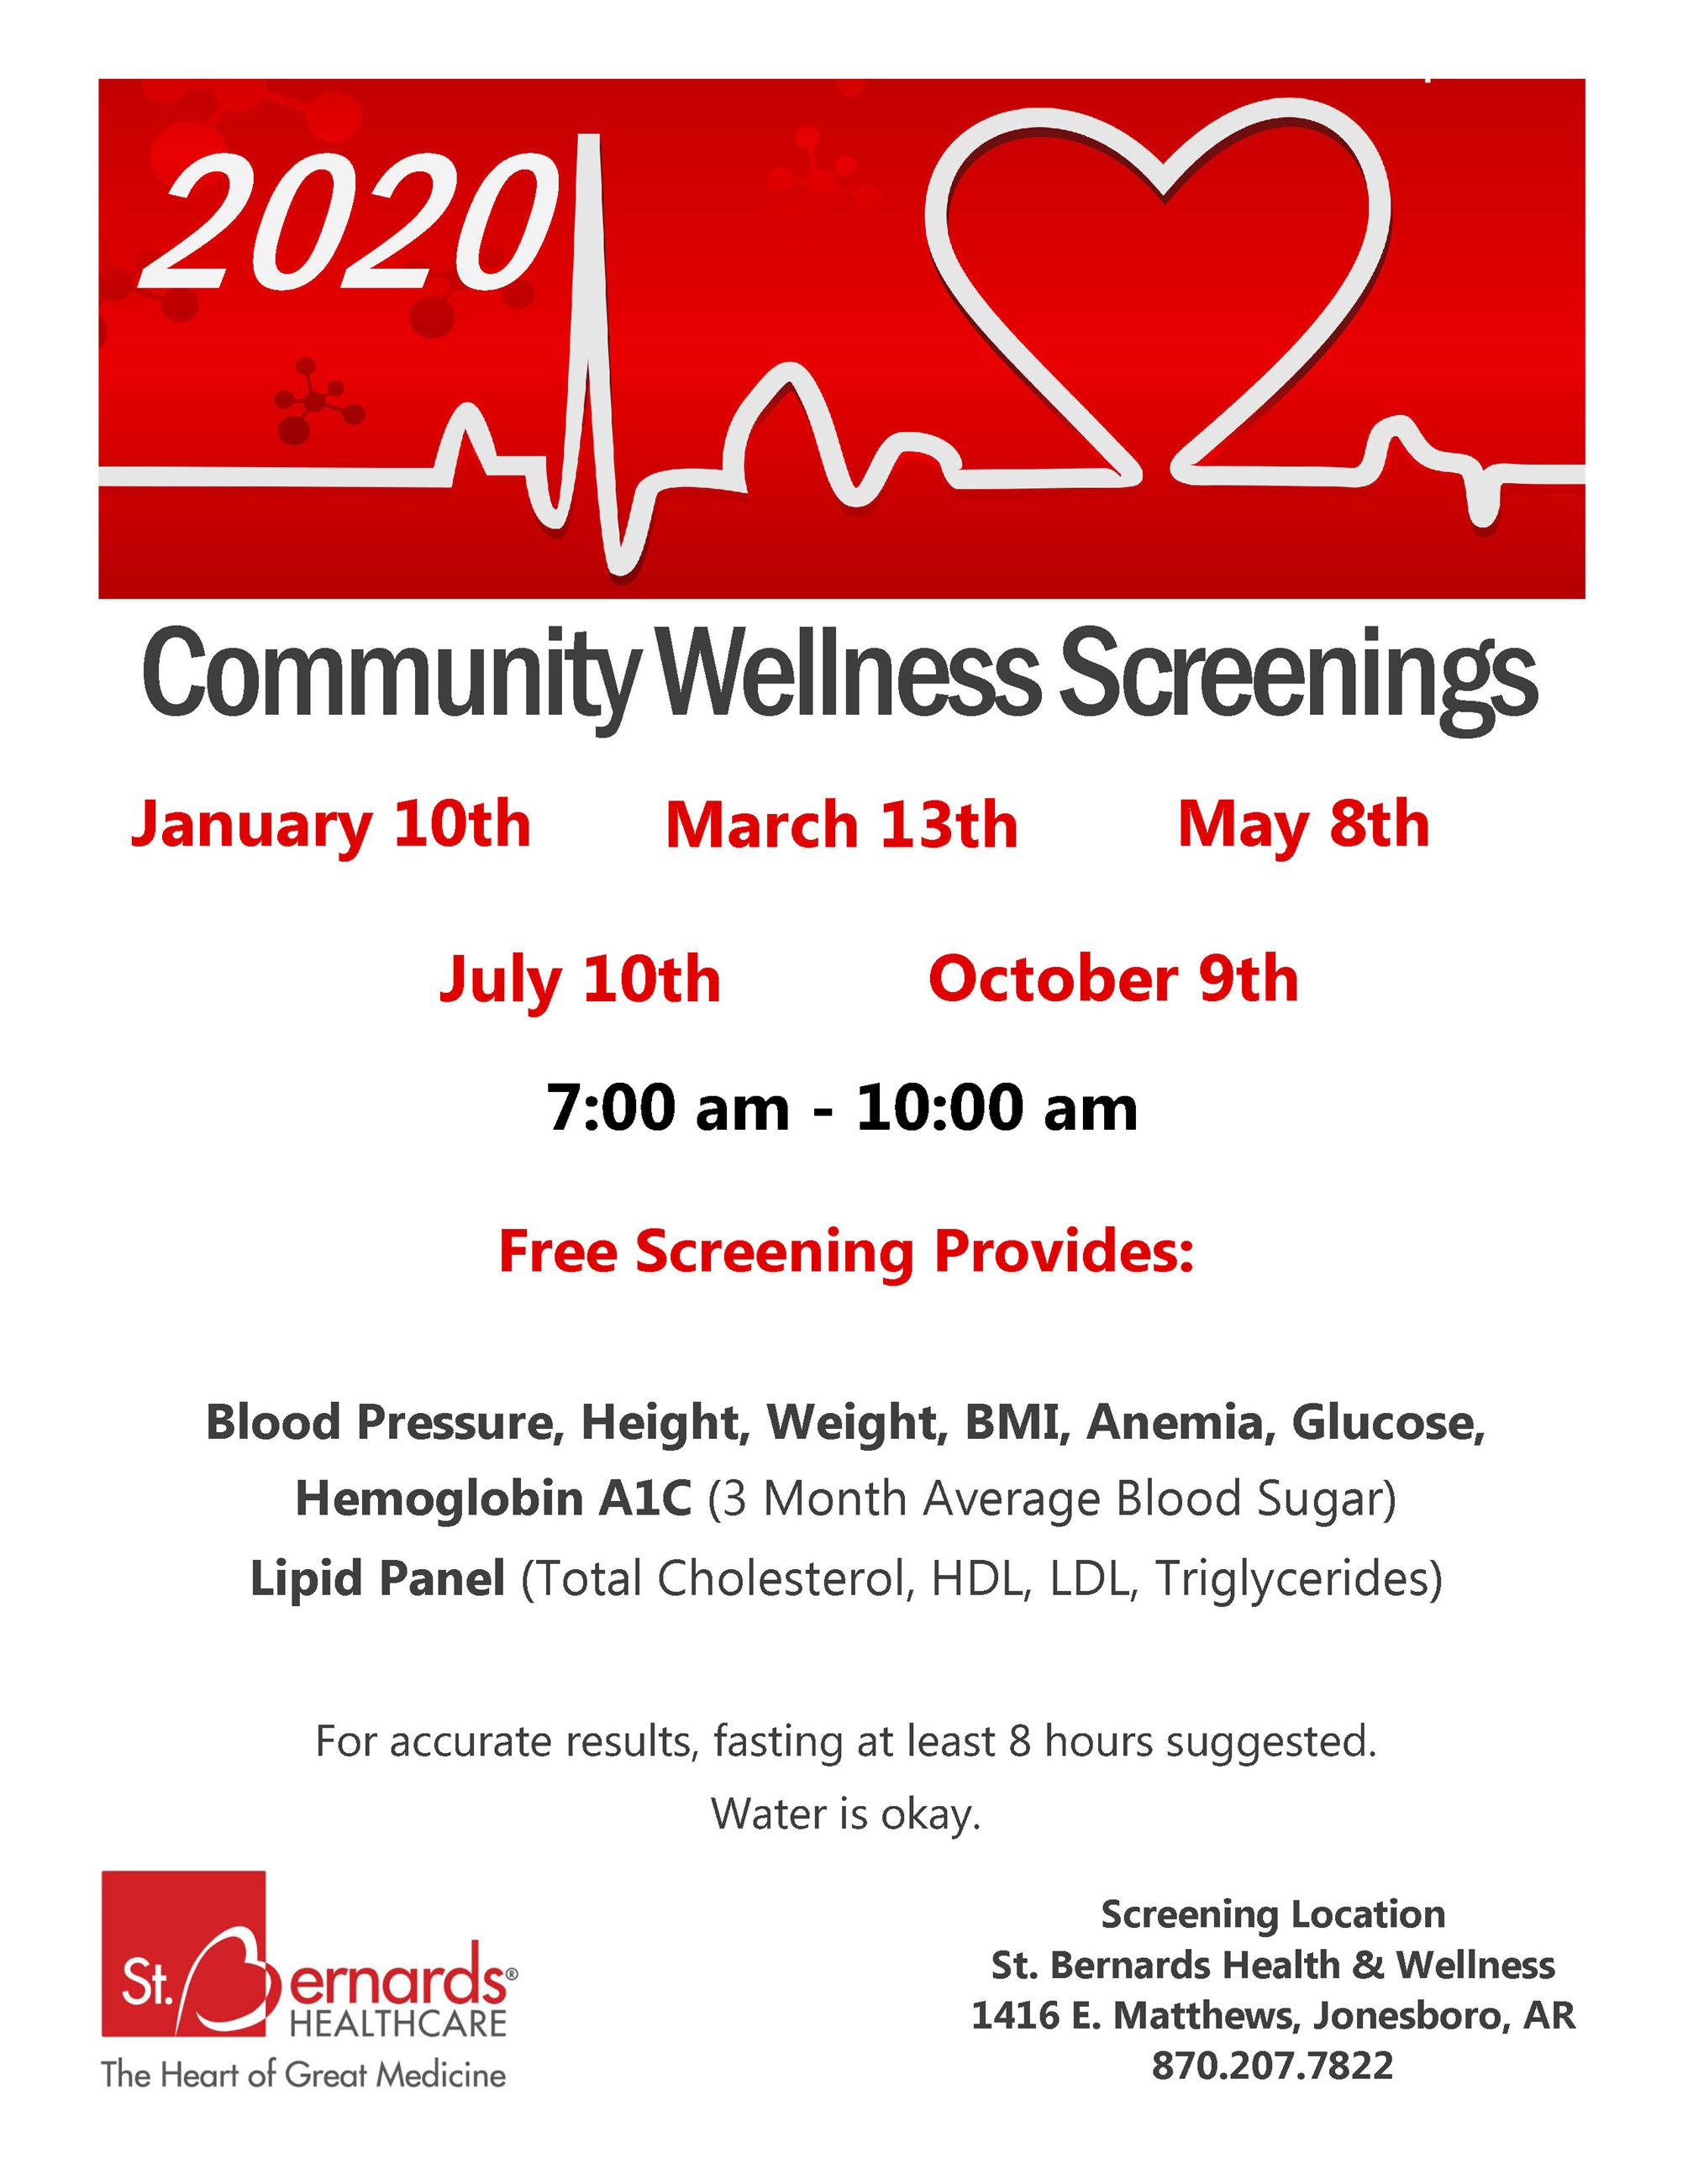 2020 Community Screening Flier, St. Bernards health and wellness; january 10, march 13, may 8, july